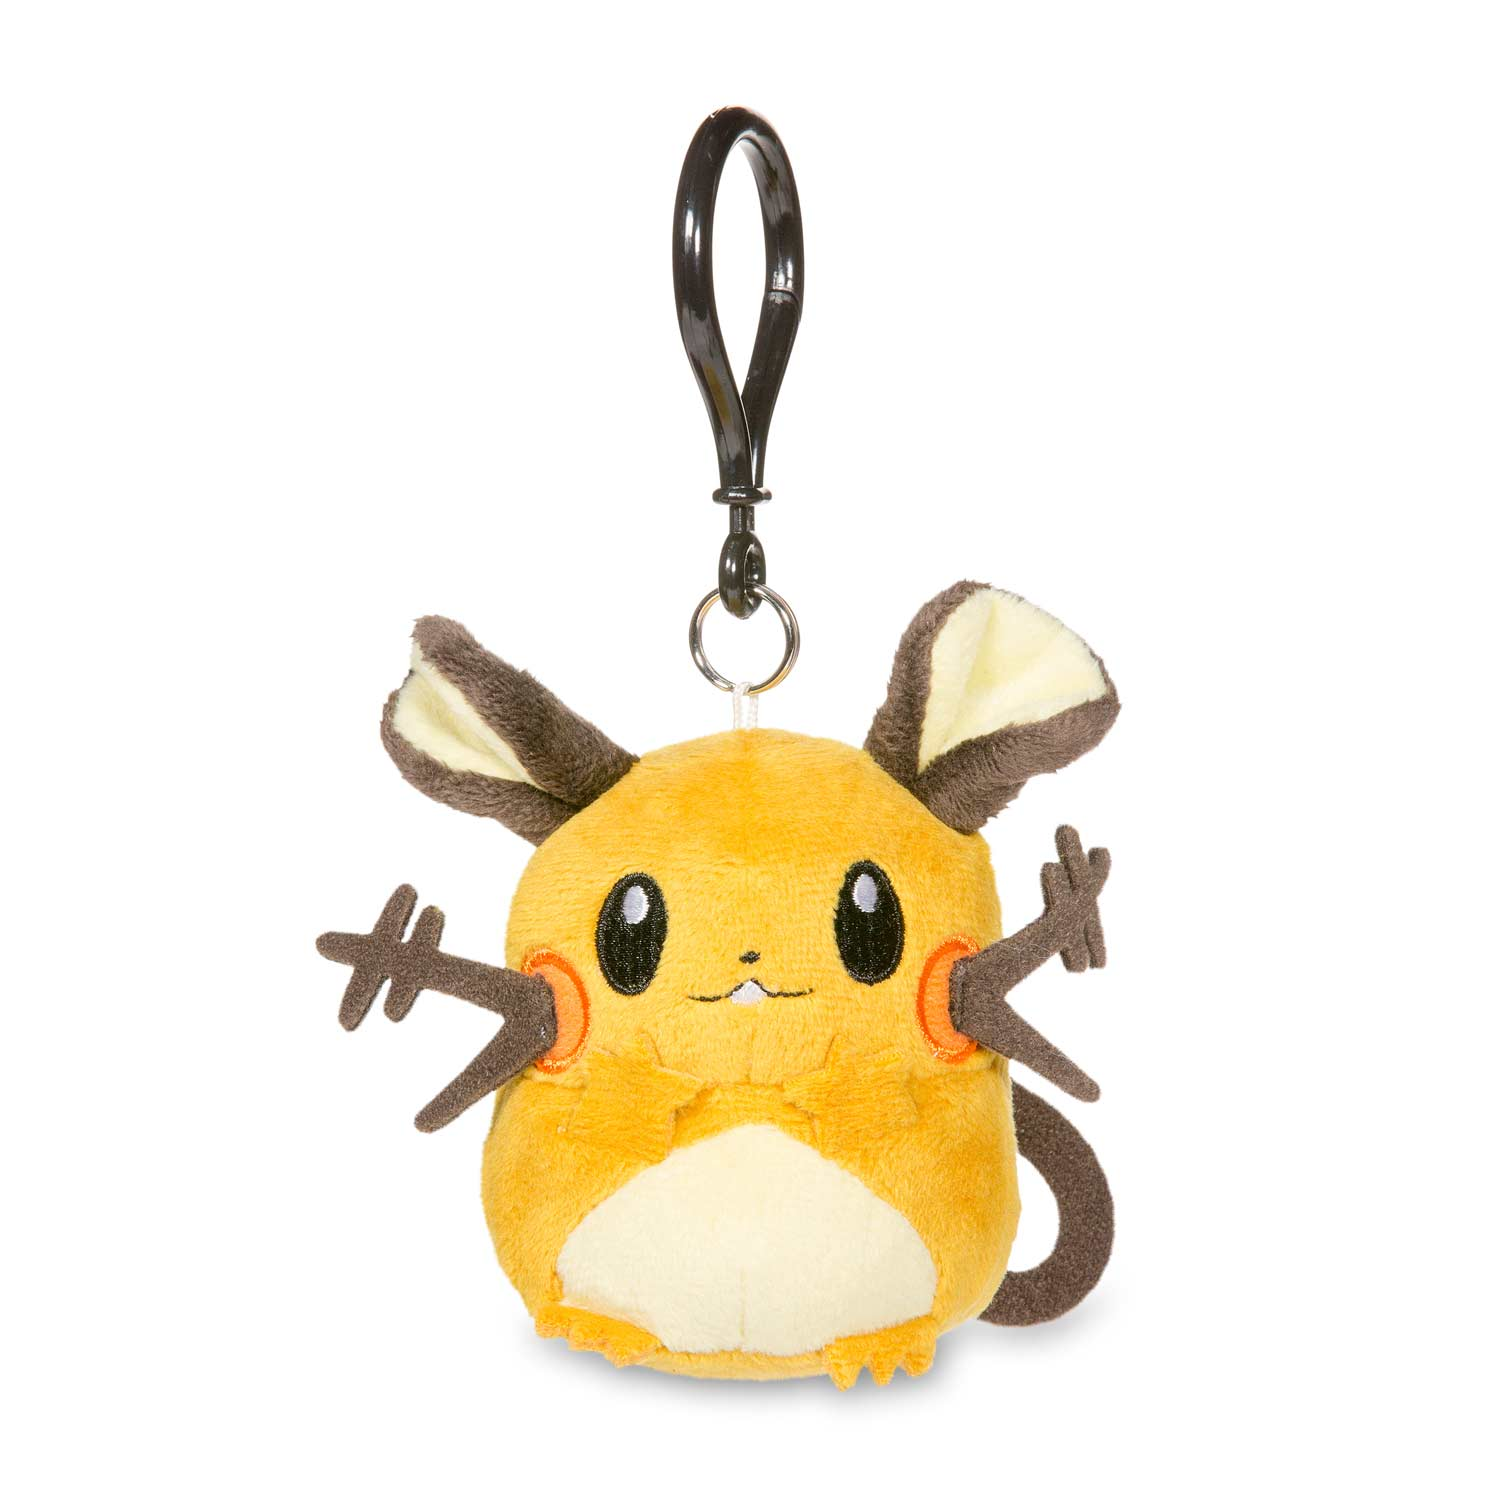 Dedenne Plush Pokémon Petit Keychain Pokémon Center Original